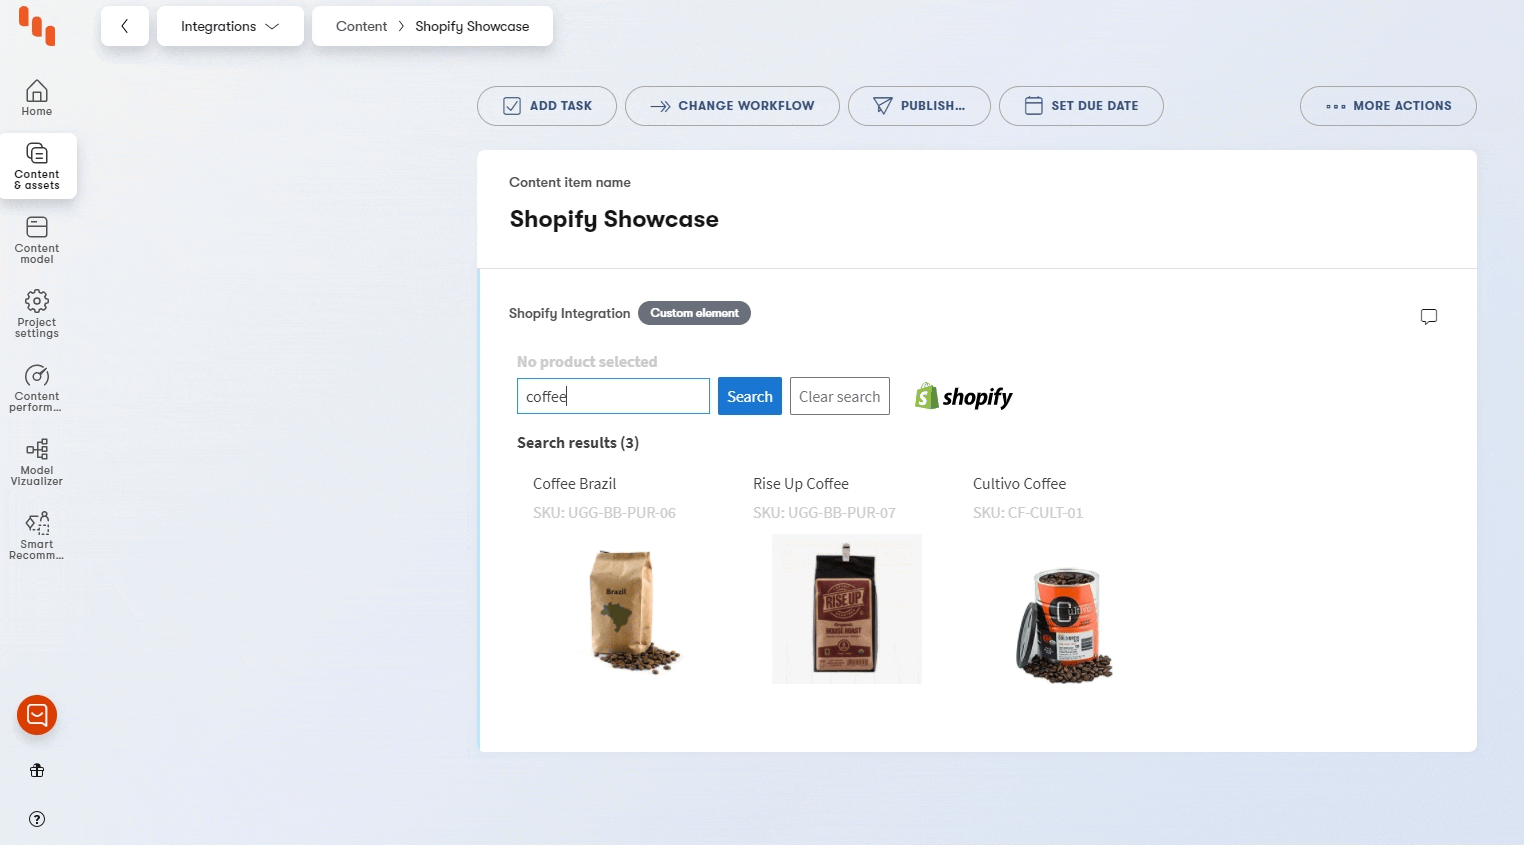 A React or Vue component picker can work similarly as this Shopify product picker.